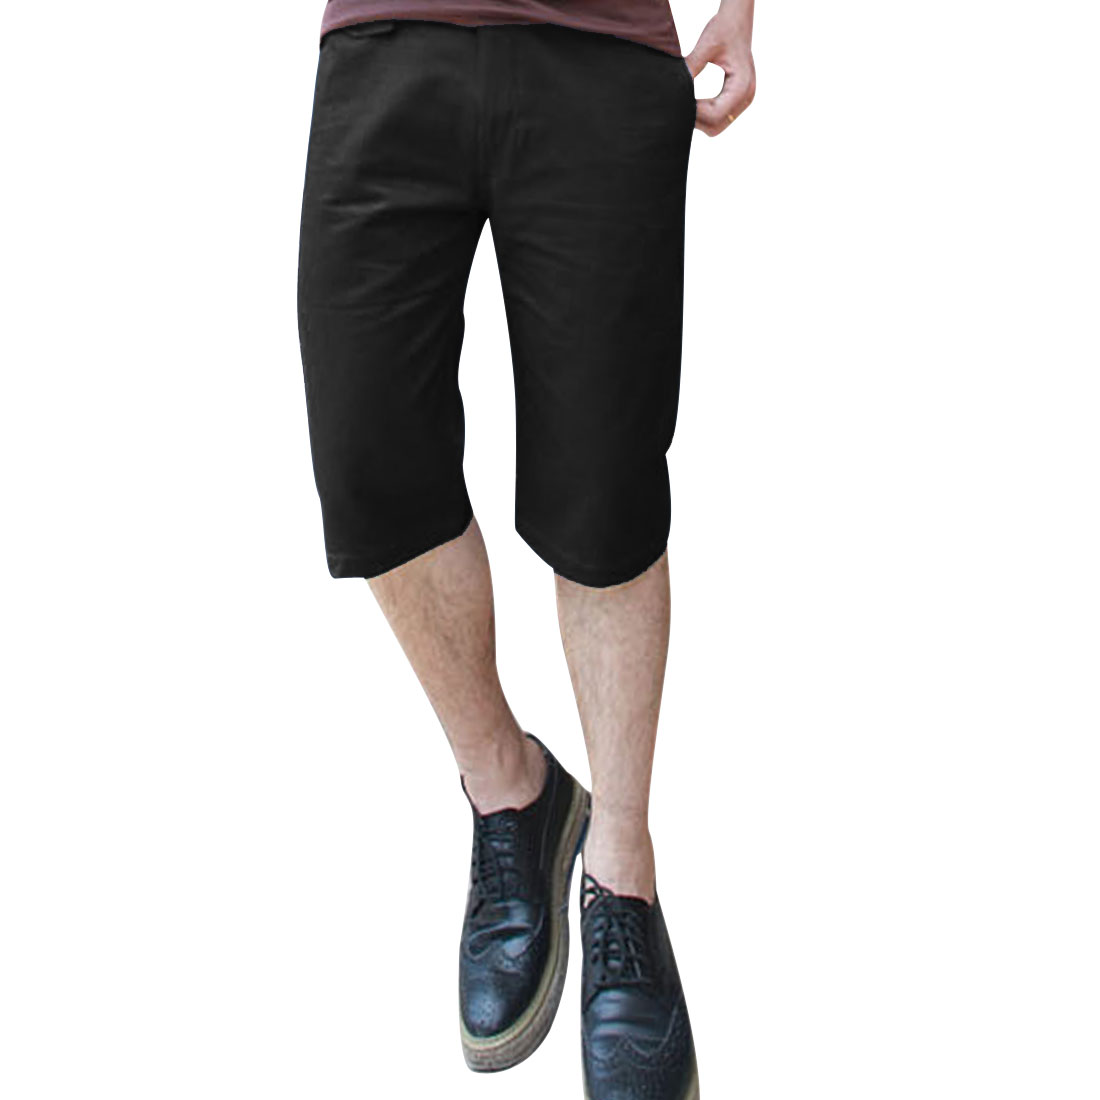 Man Hip Slant Pockets Belted Loop Fashion Shorts Trousers Black W34